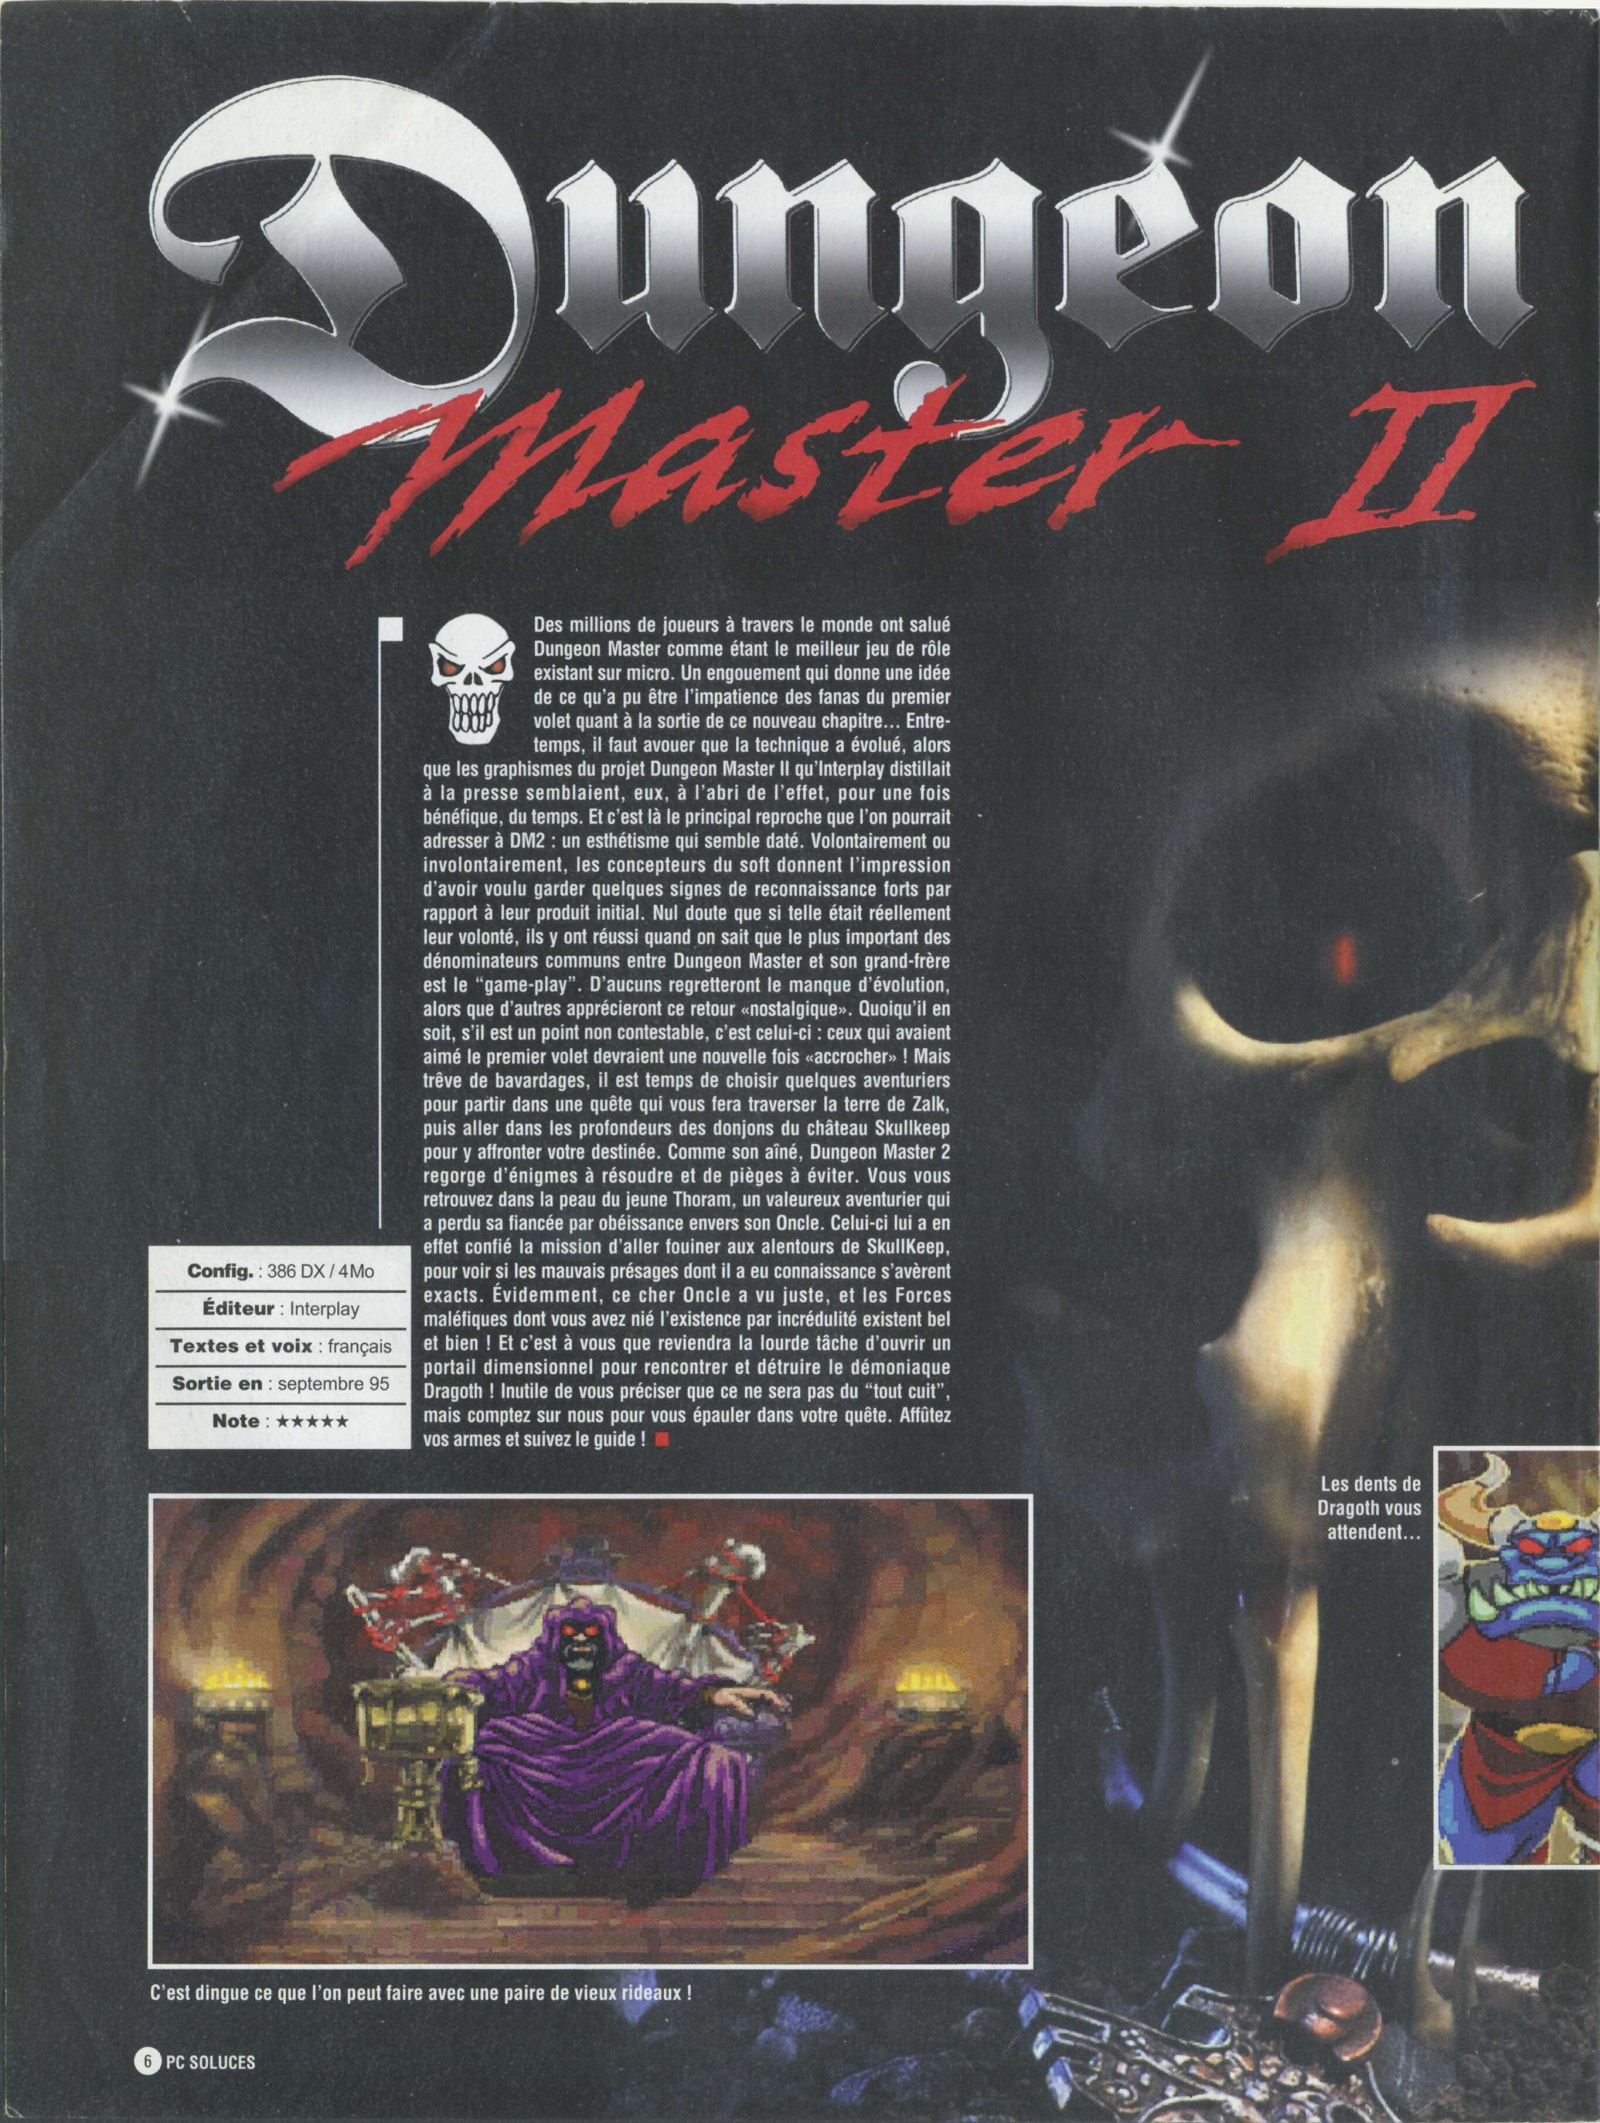 Dungeon Master II solution published in French magazine &amp;#039;PC Soluces&amp;#039;, Issue#1, February-March 1996, Page06